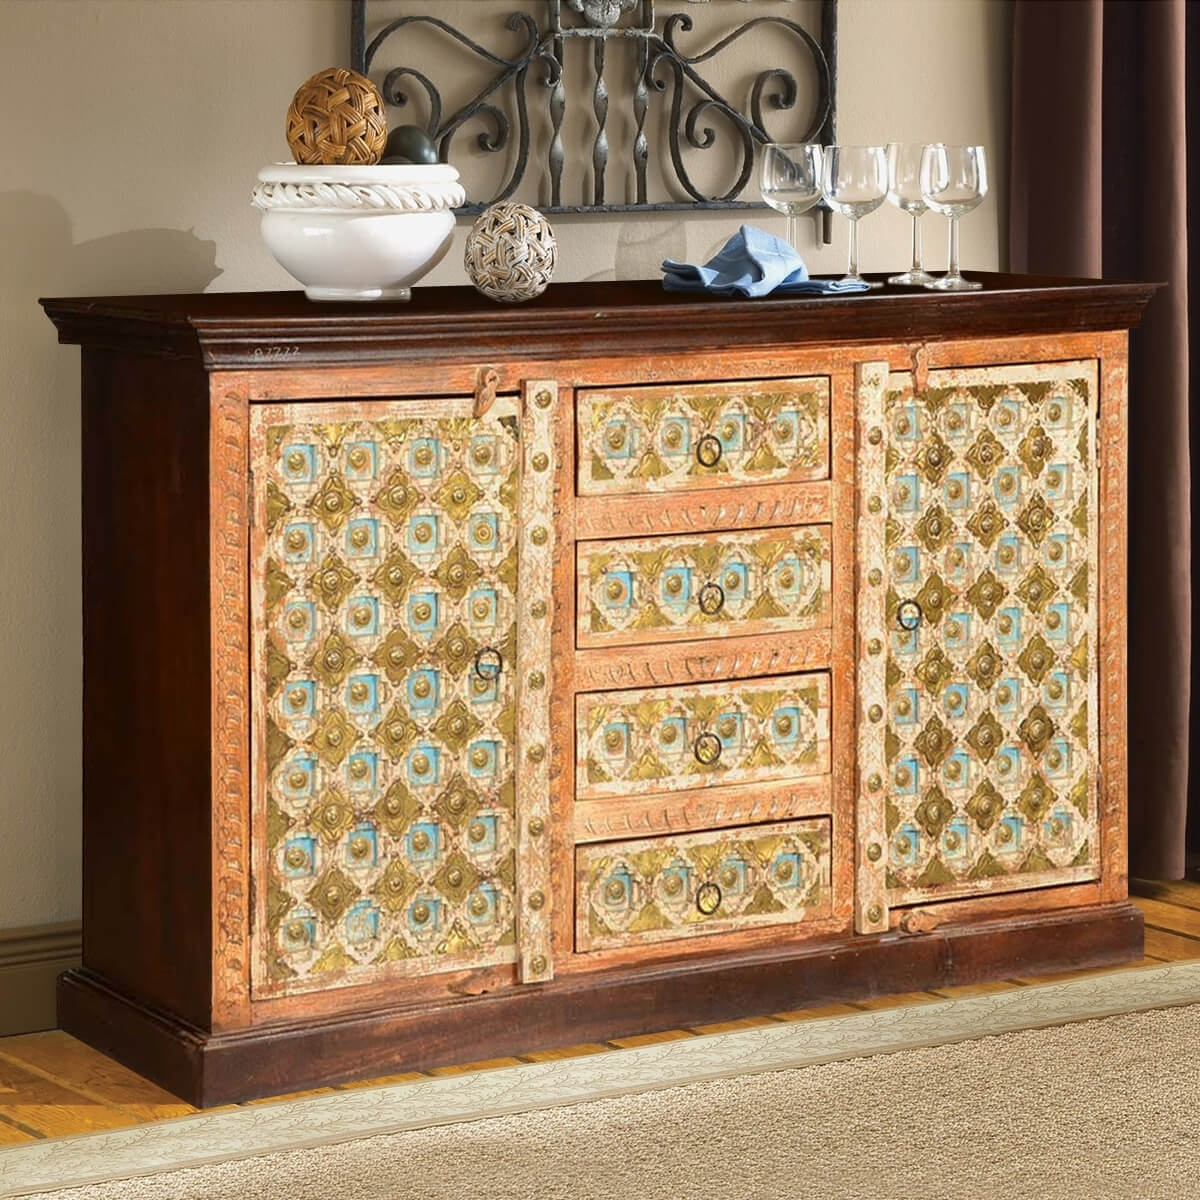 Inspiration about Turkish Handcrafted Brass Inlay Mango Wood 4 Drawer Sideboard Cabinet Regarding Most Up To Date Open Shelf Brass 4 Drawer Sideboards (#7 of 20)